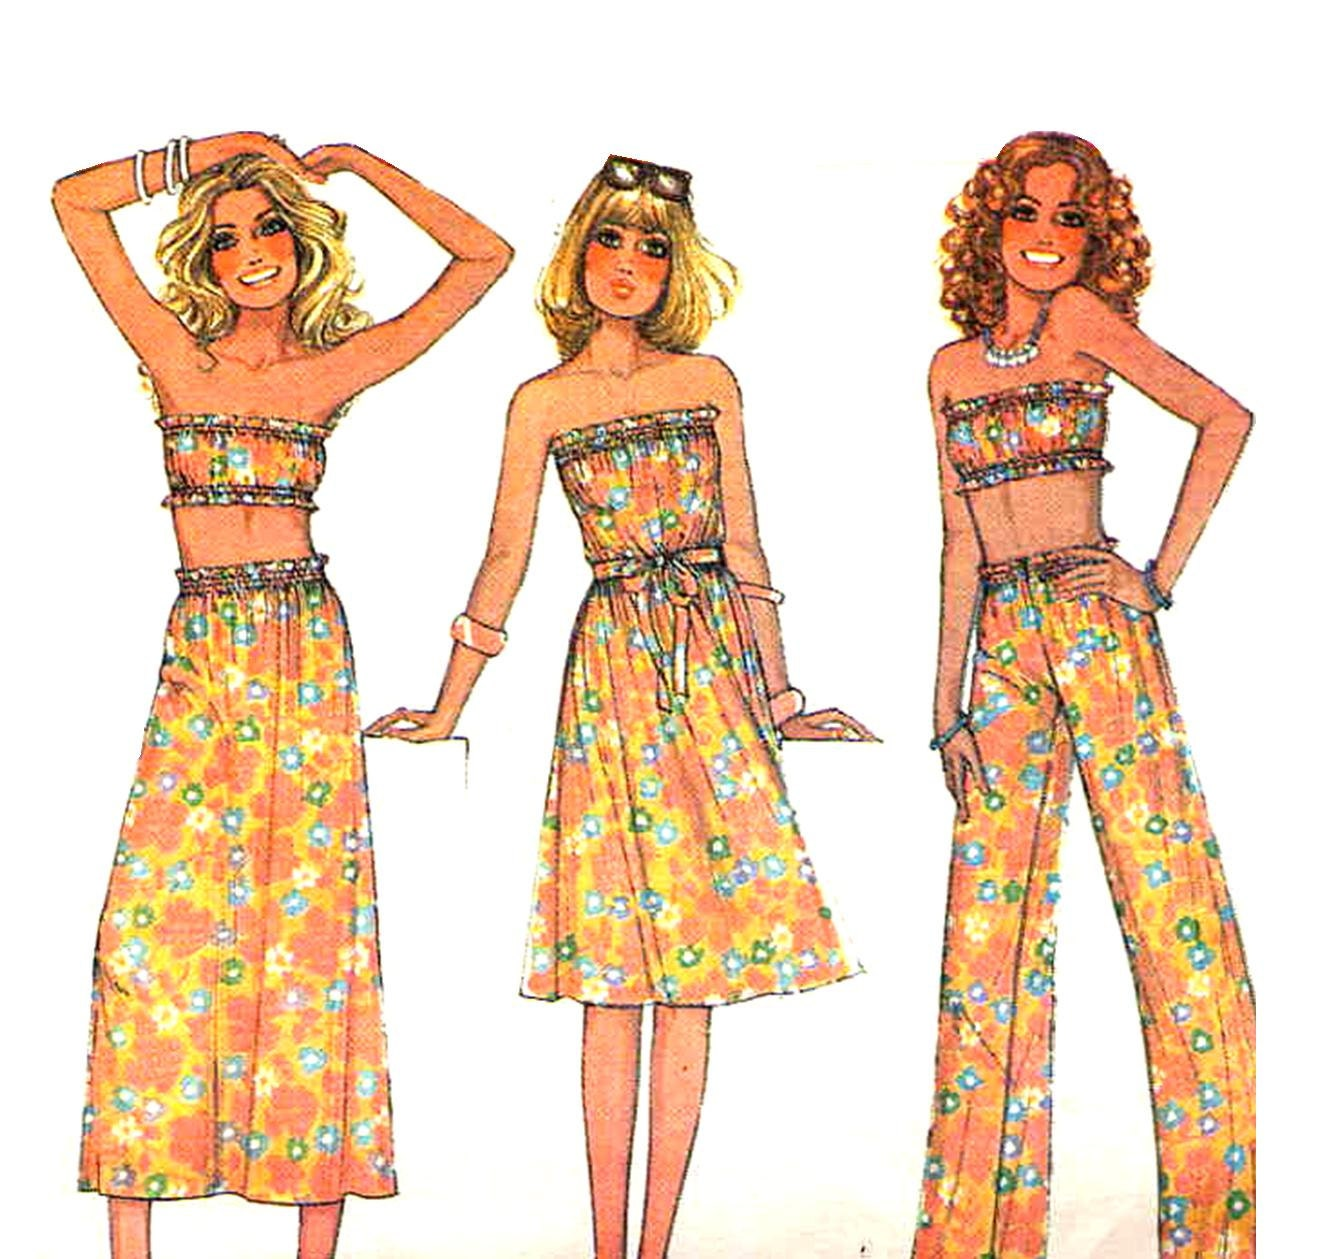 Vintage 1970s Tube Top Dress or Skirt and by MaddieModPatterns - photo#26